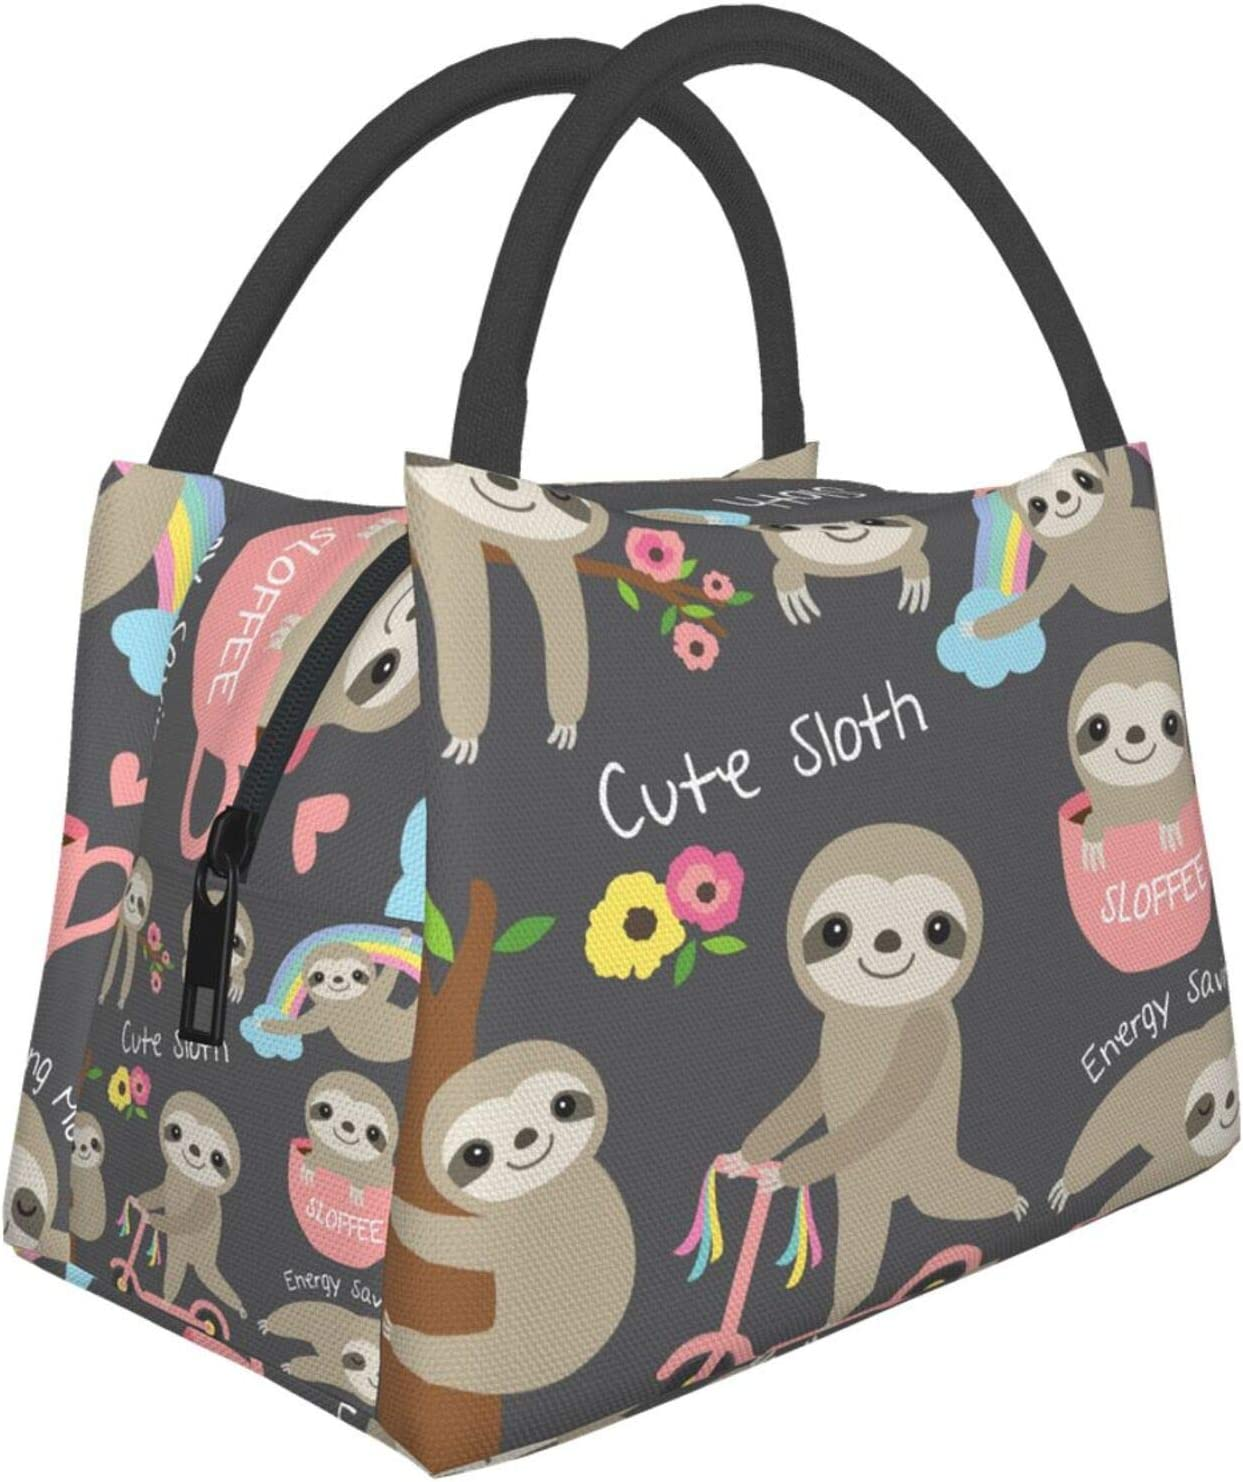 Reusable Insulated Lunch Bag Cute Directly managed store Funny Tre SALENEW very popular Floral Rainbow Sloth